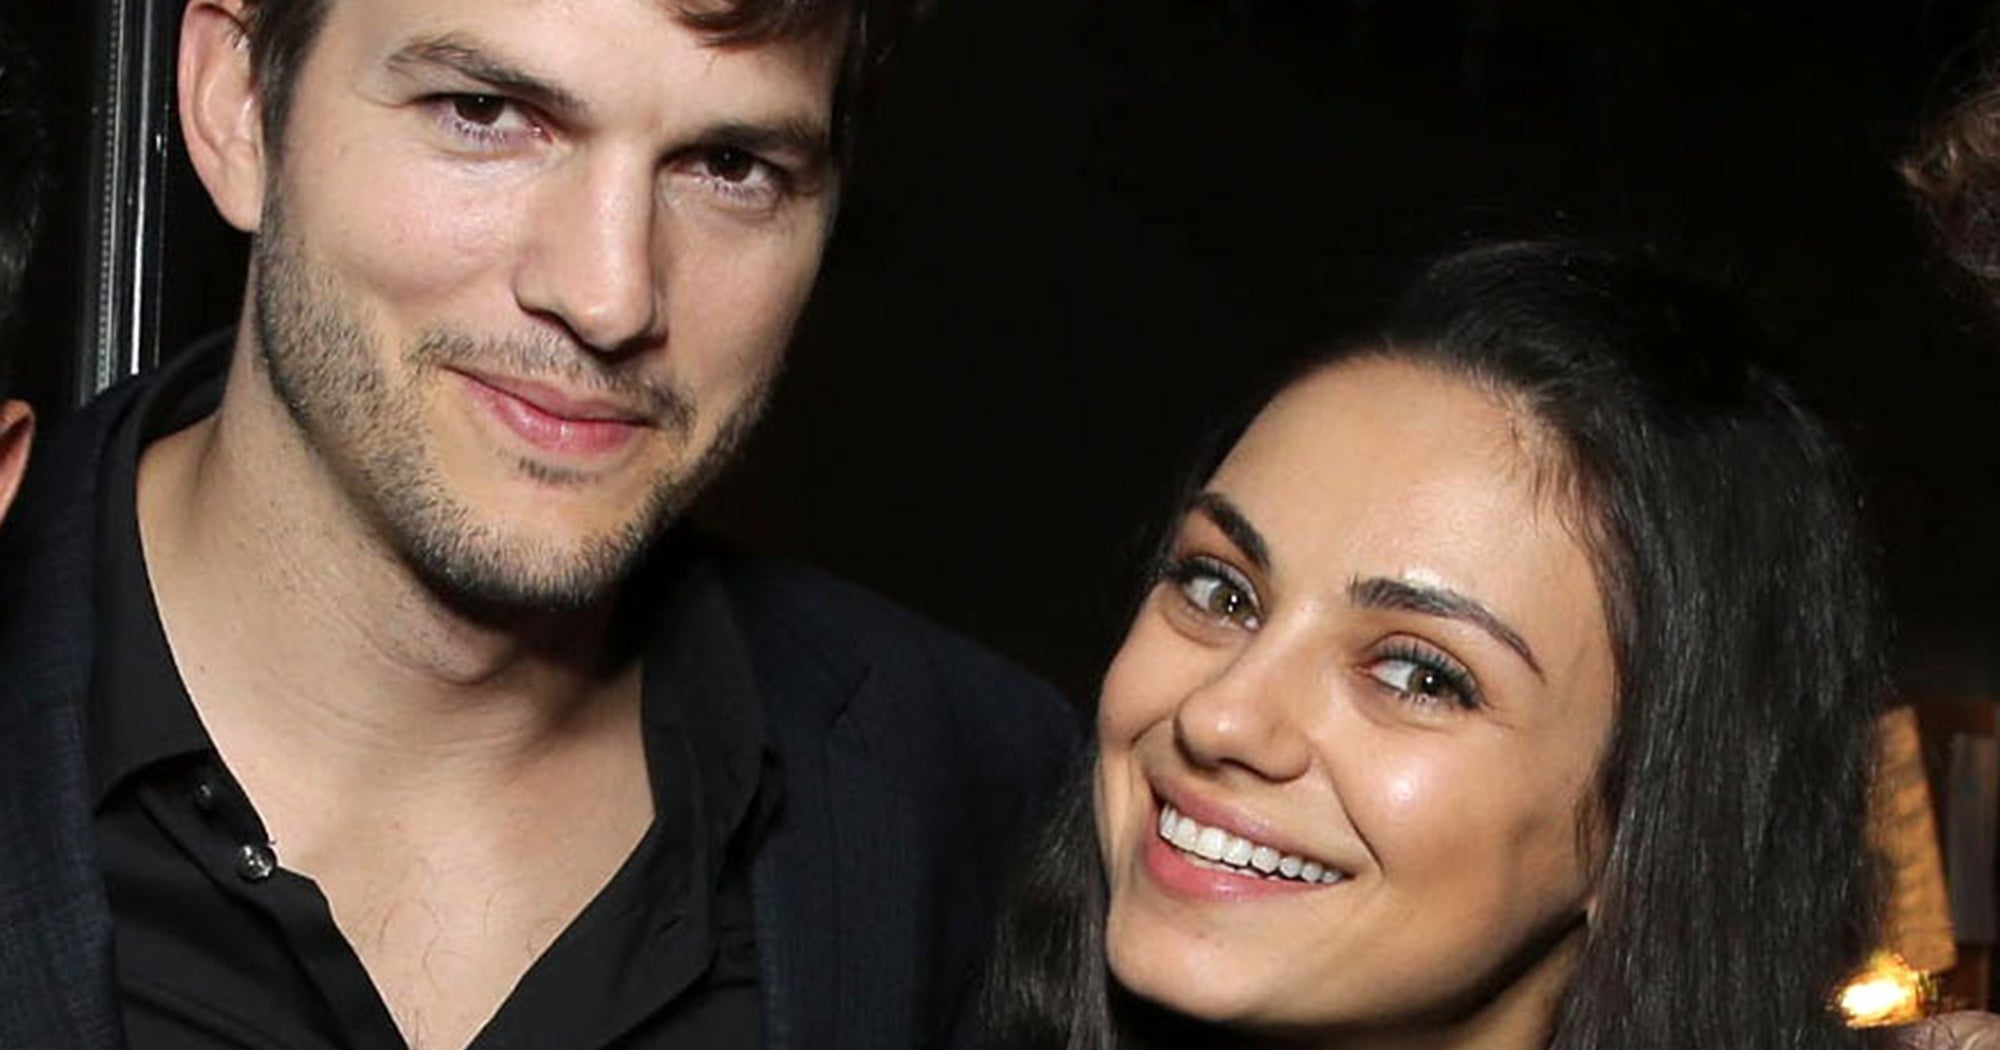 Mila Kunis Shares Ashton Kutcher's Heated Reaction To Her Joining The Real Housewives